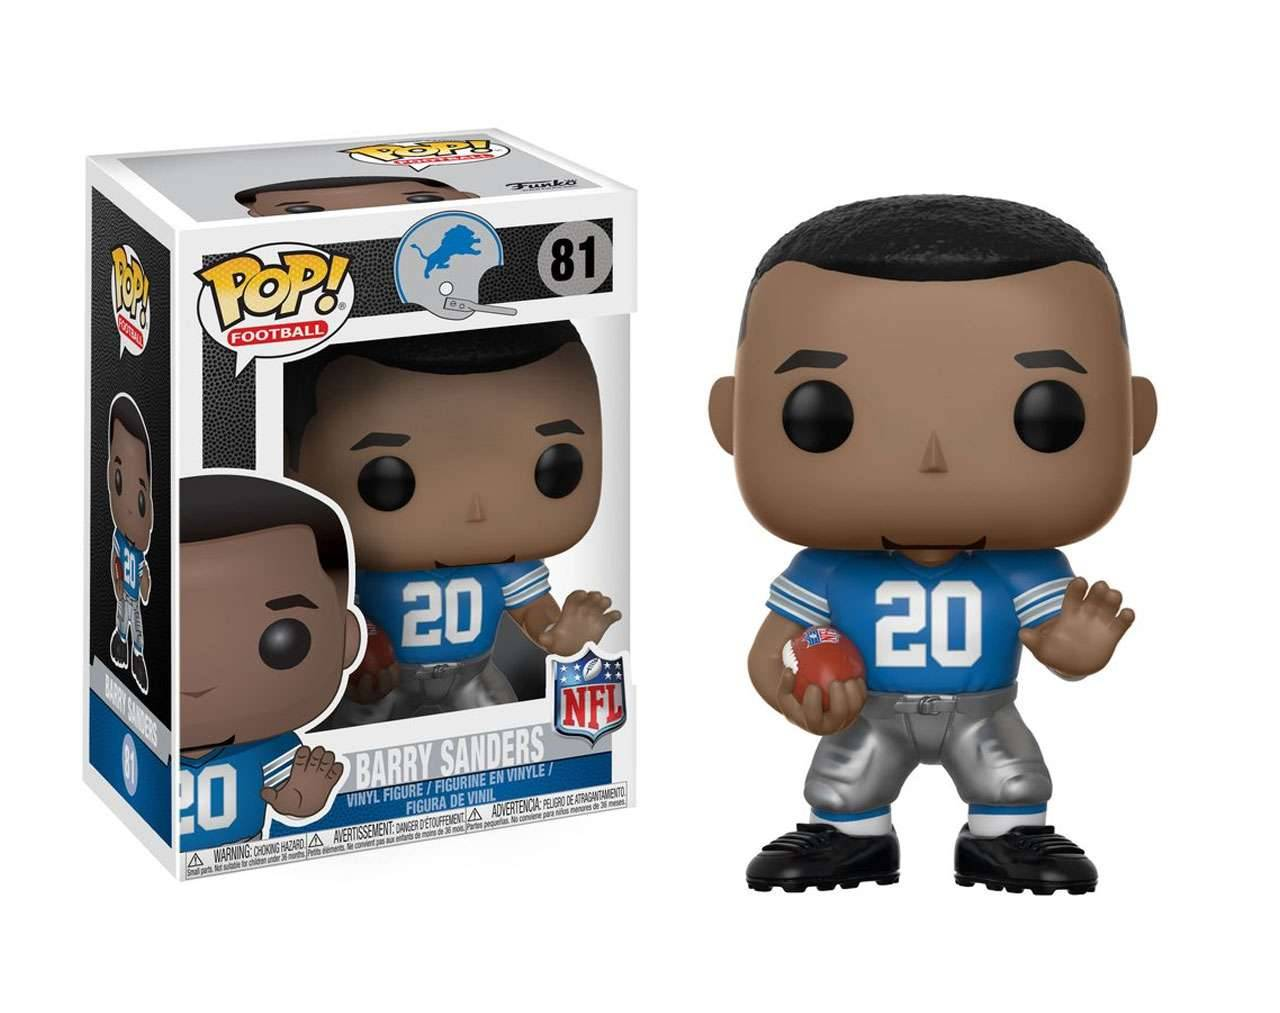 Barry Sanders (NFL LEGENDS) Pop! Vinyl